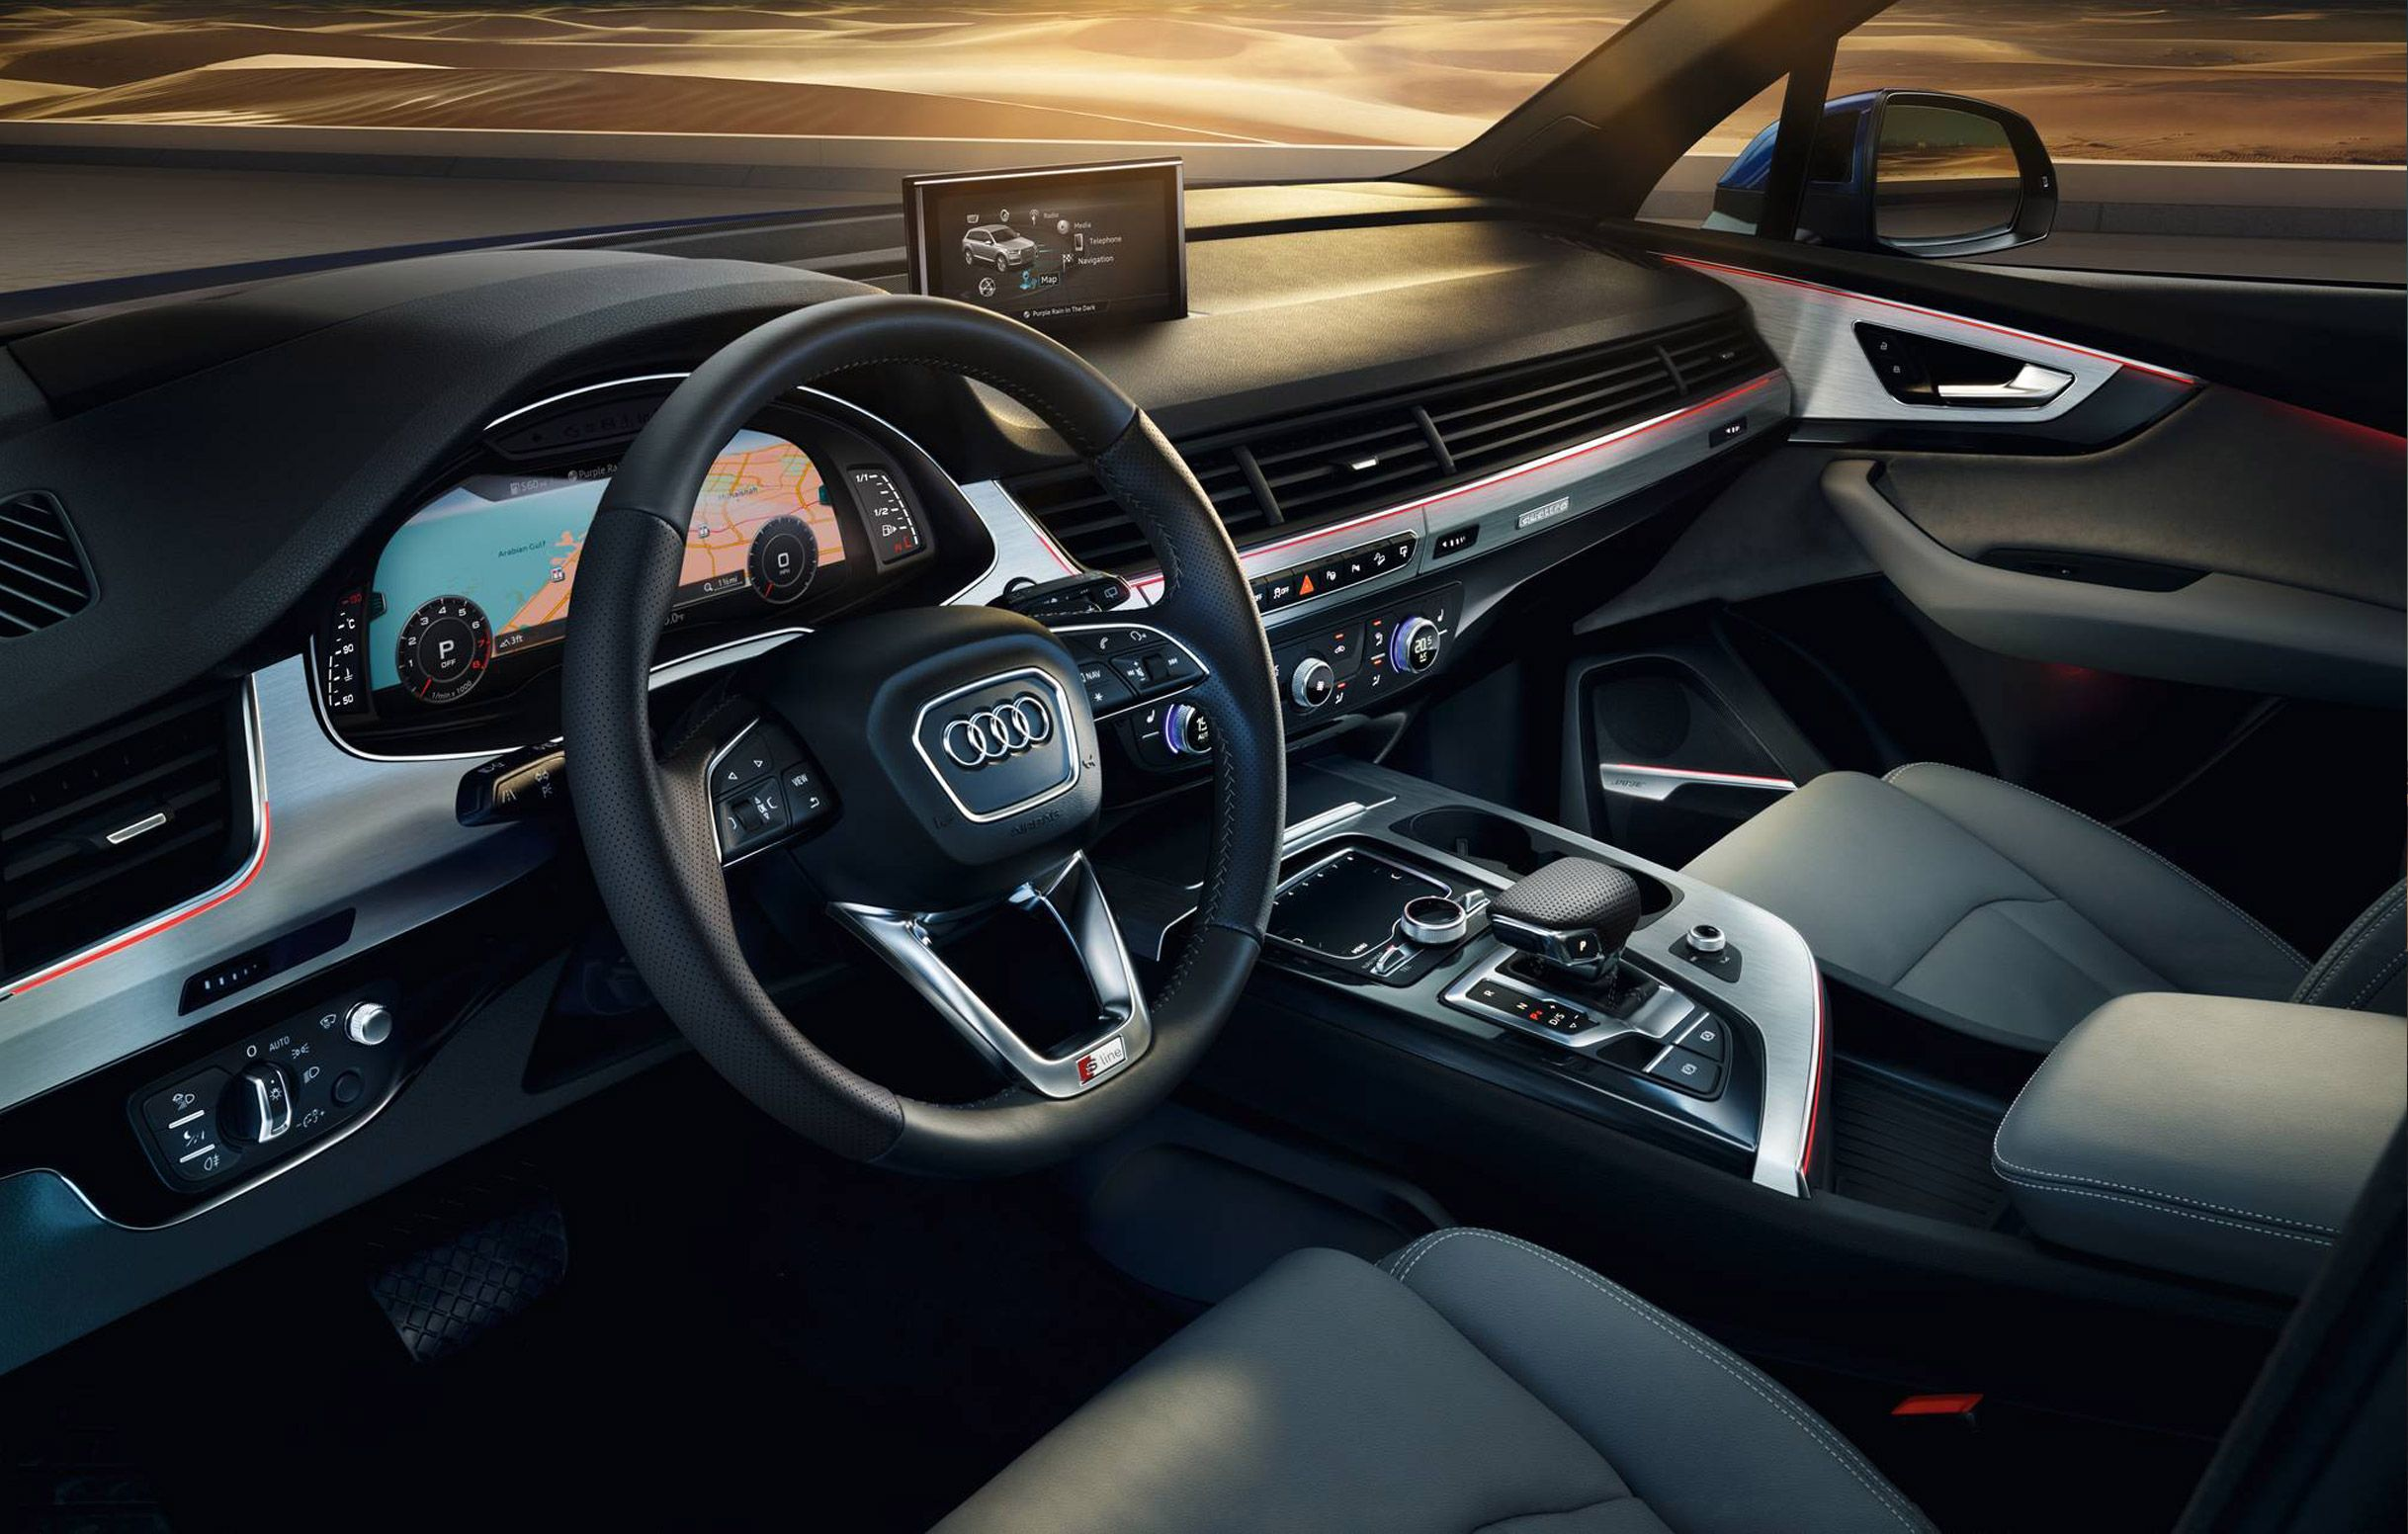 2017 audi q7 30t quattro cockpit car audi concepts pinterest audi q7 audi and cars